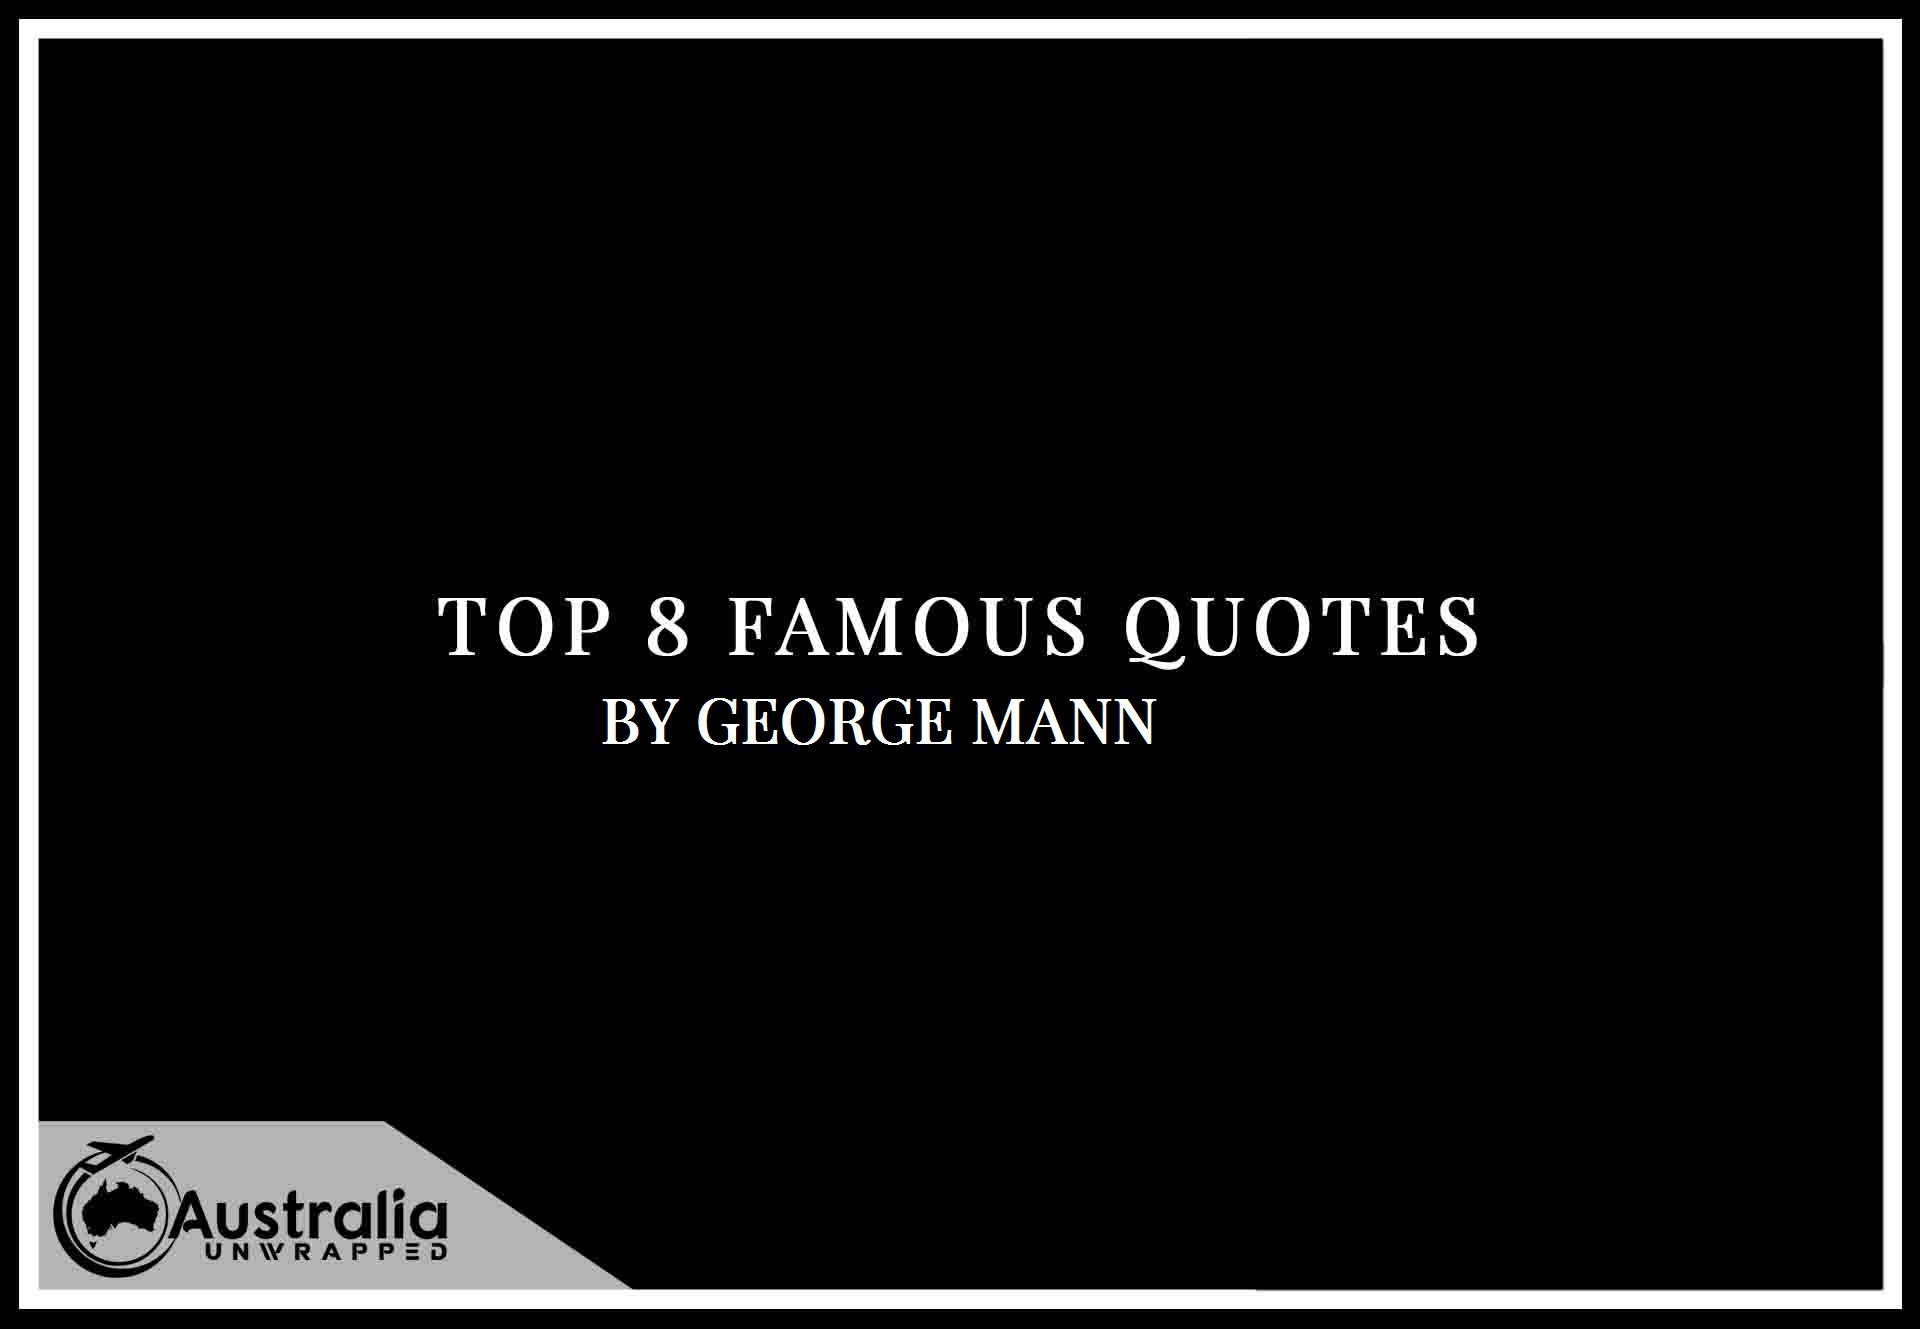 George Mann's Top 8 Popular and Famous Quotes